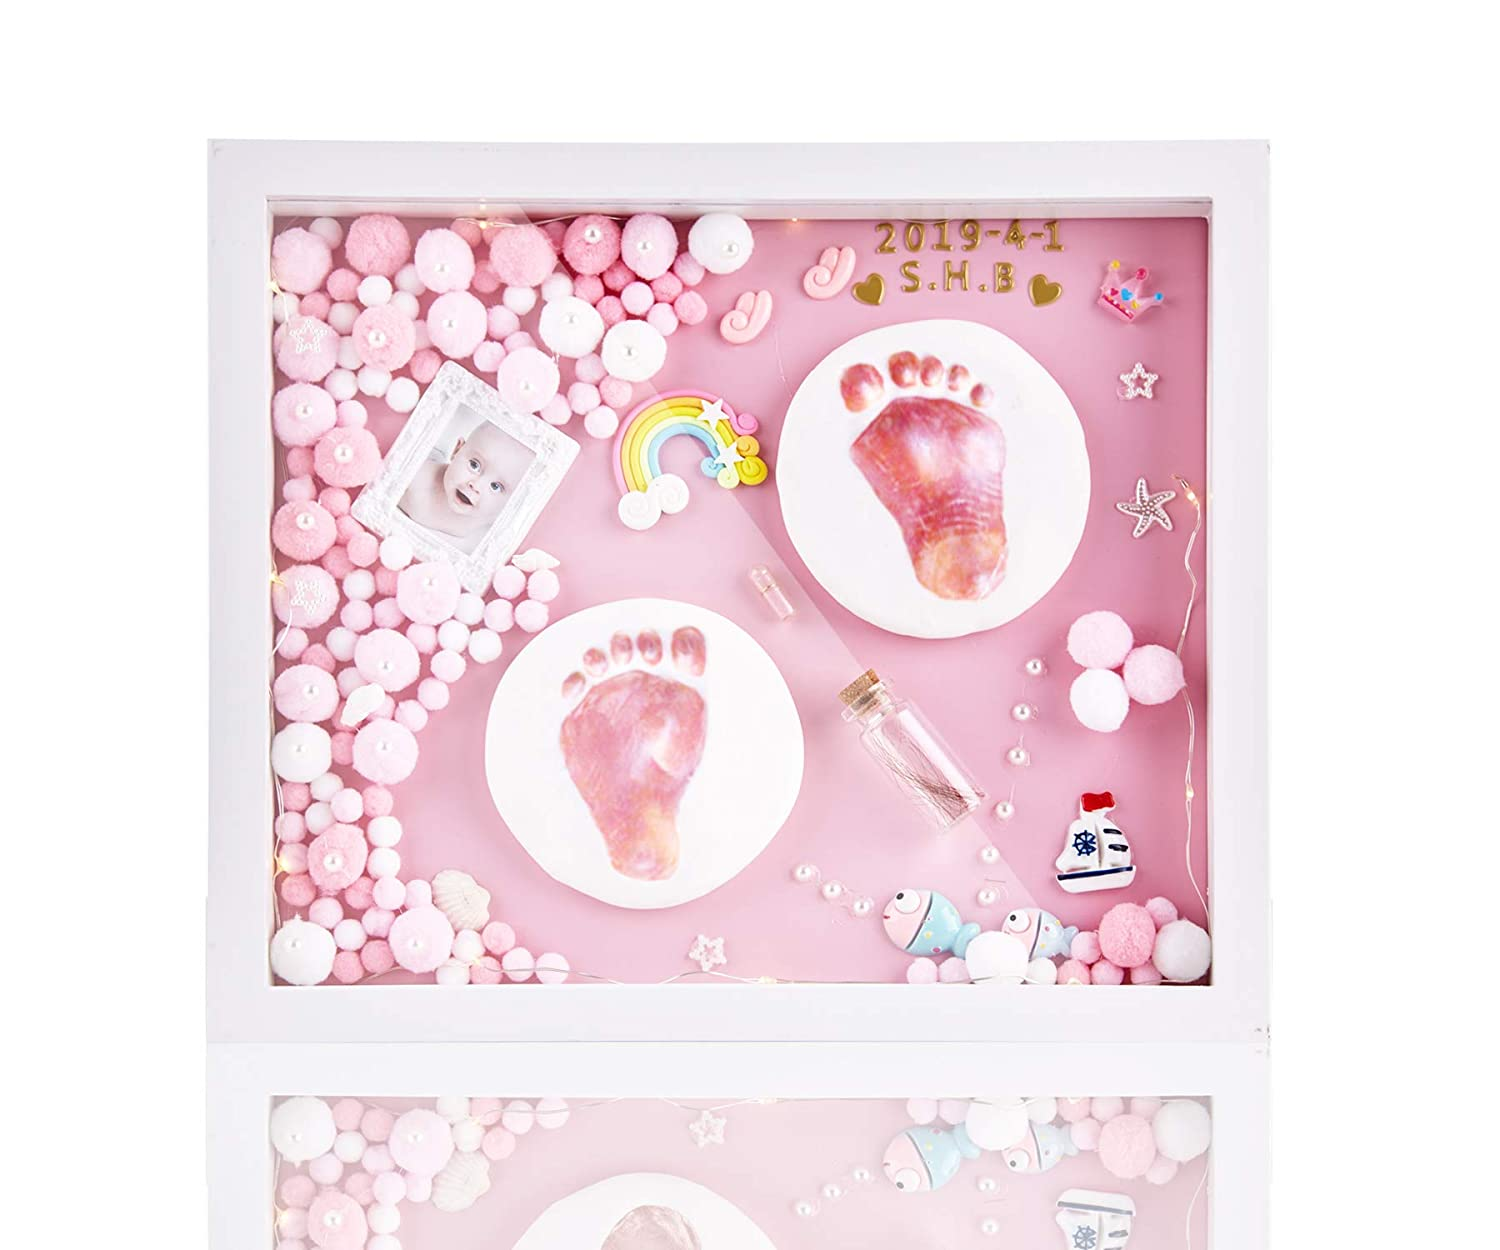 Baby Hand and Footprint Kit for Newborn Girls and Boys, Personalized Baby Handprint and Footprint frame Keepsake, Non-Toxic Clay, Solid Wood Picture Frame. Perfect Registry, Baby Shower & Newborn Gift